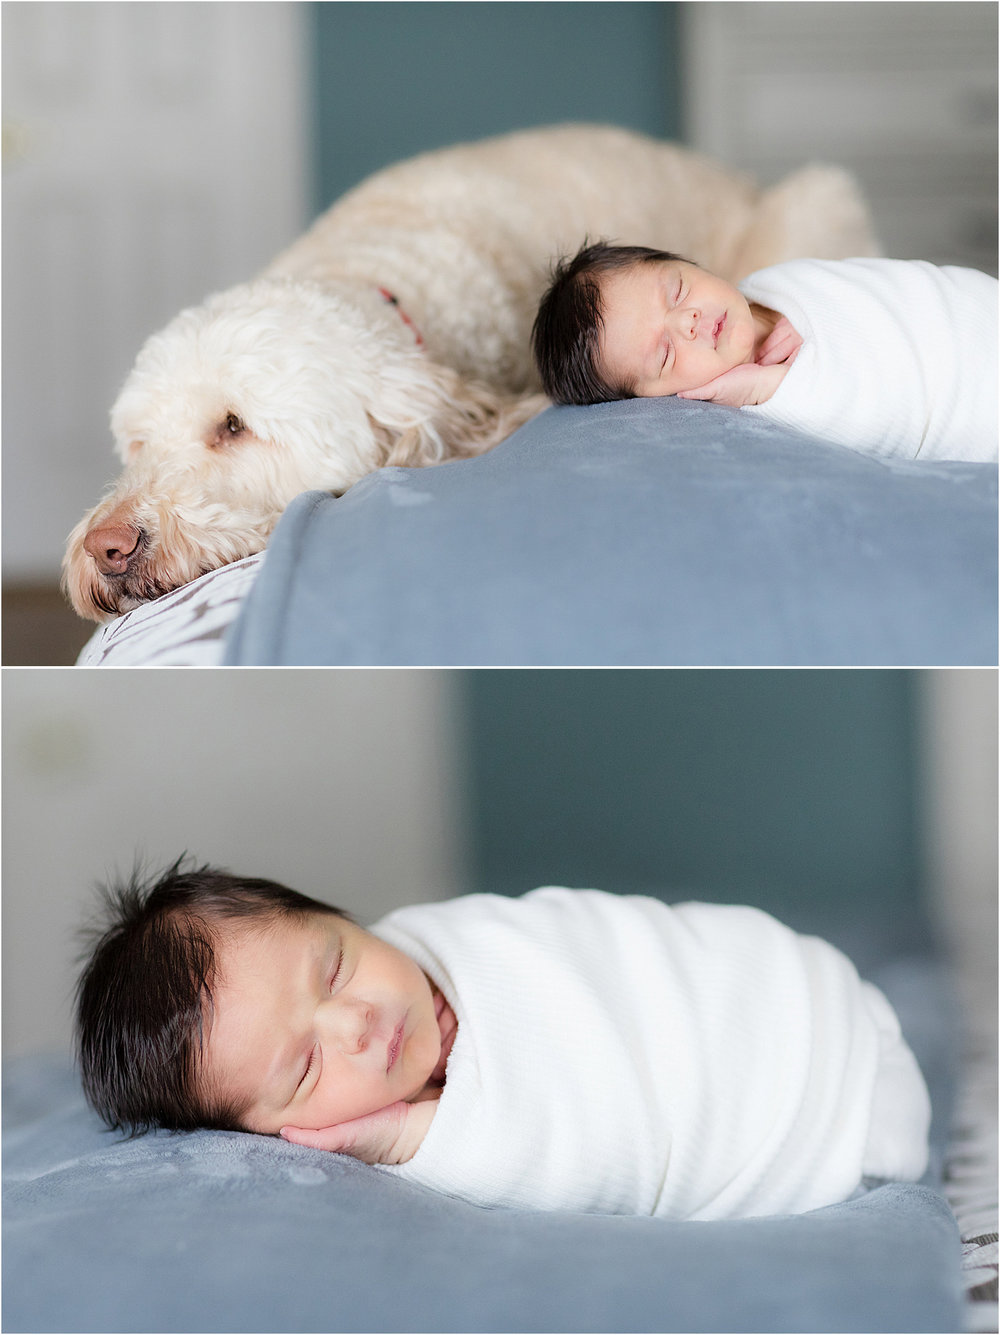 newborn-boy-on-bed-with-dog